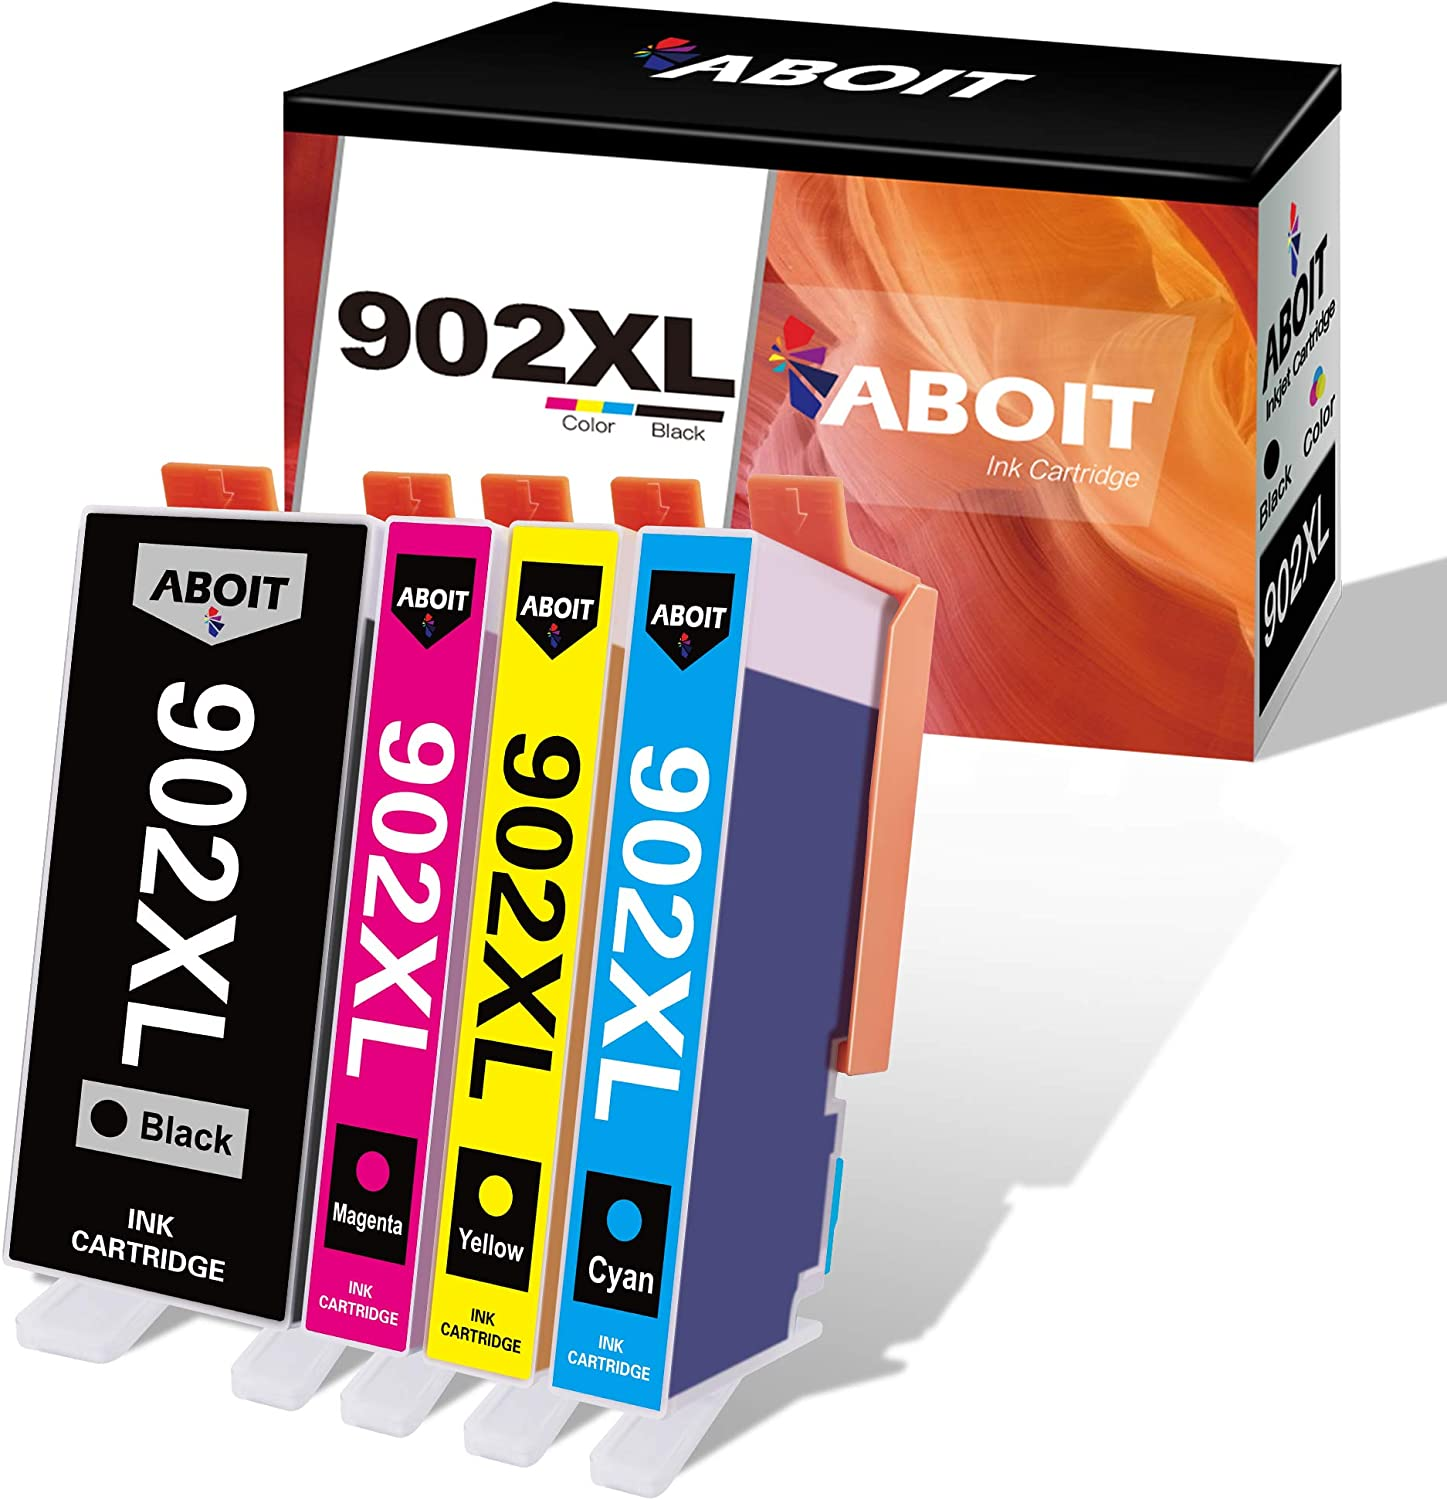 ABOIT Compatible Ink Cartridge Replacement for HP 902XL 902 XL Ink to use wtih Officejet Pro 6978 6968 6958 6960 6962 6954 Printers (Black, Magenta, Cyan, Yellow, 4 Pack)